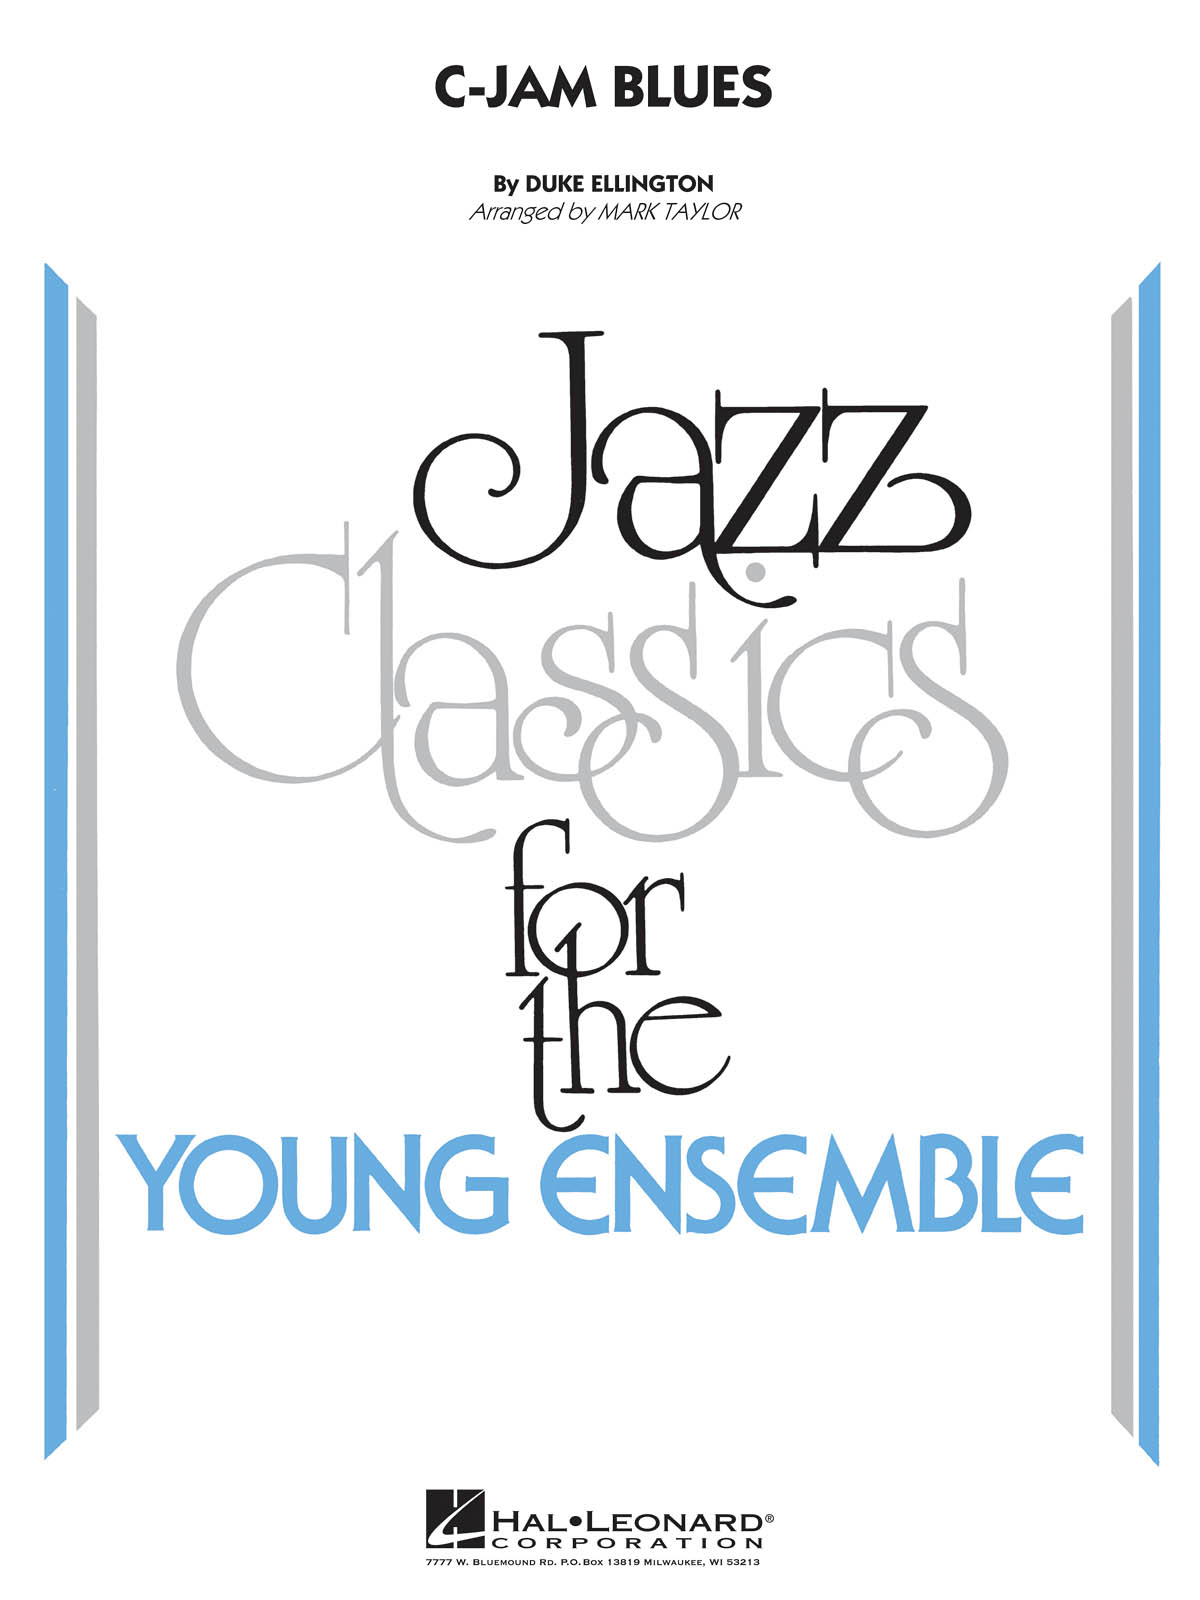 C-Jam Blues: Jazz Classics for the Young Ensemble